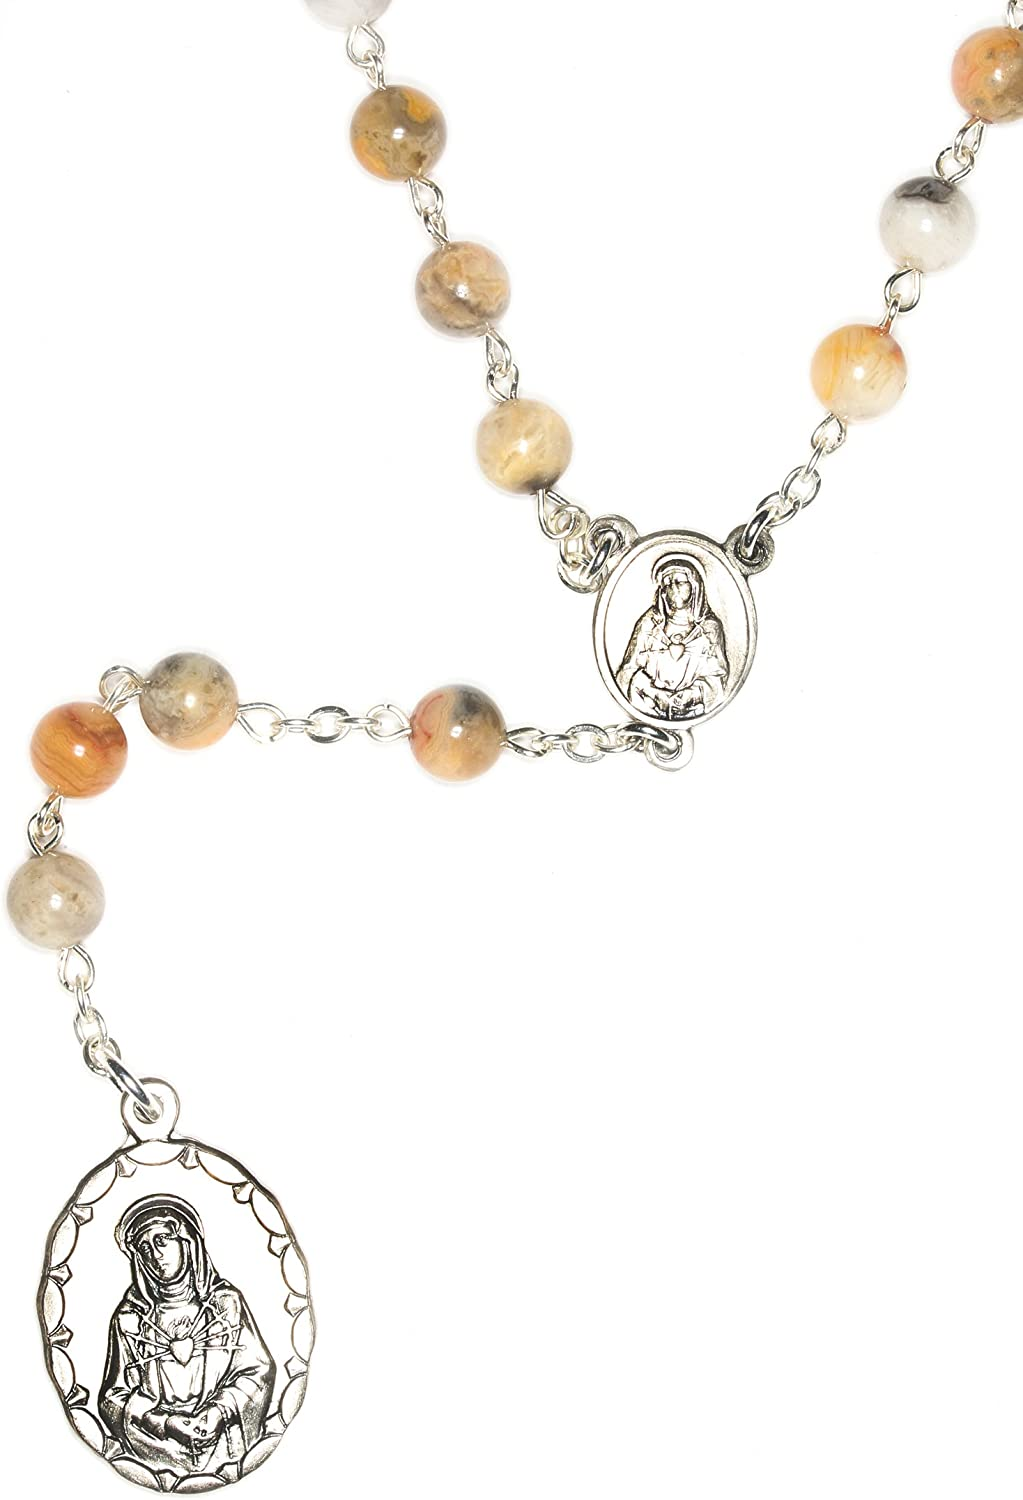 Seven Sorrows of Mary Dolors Dolours Rosary Cheap mail order shopping 2021